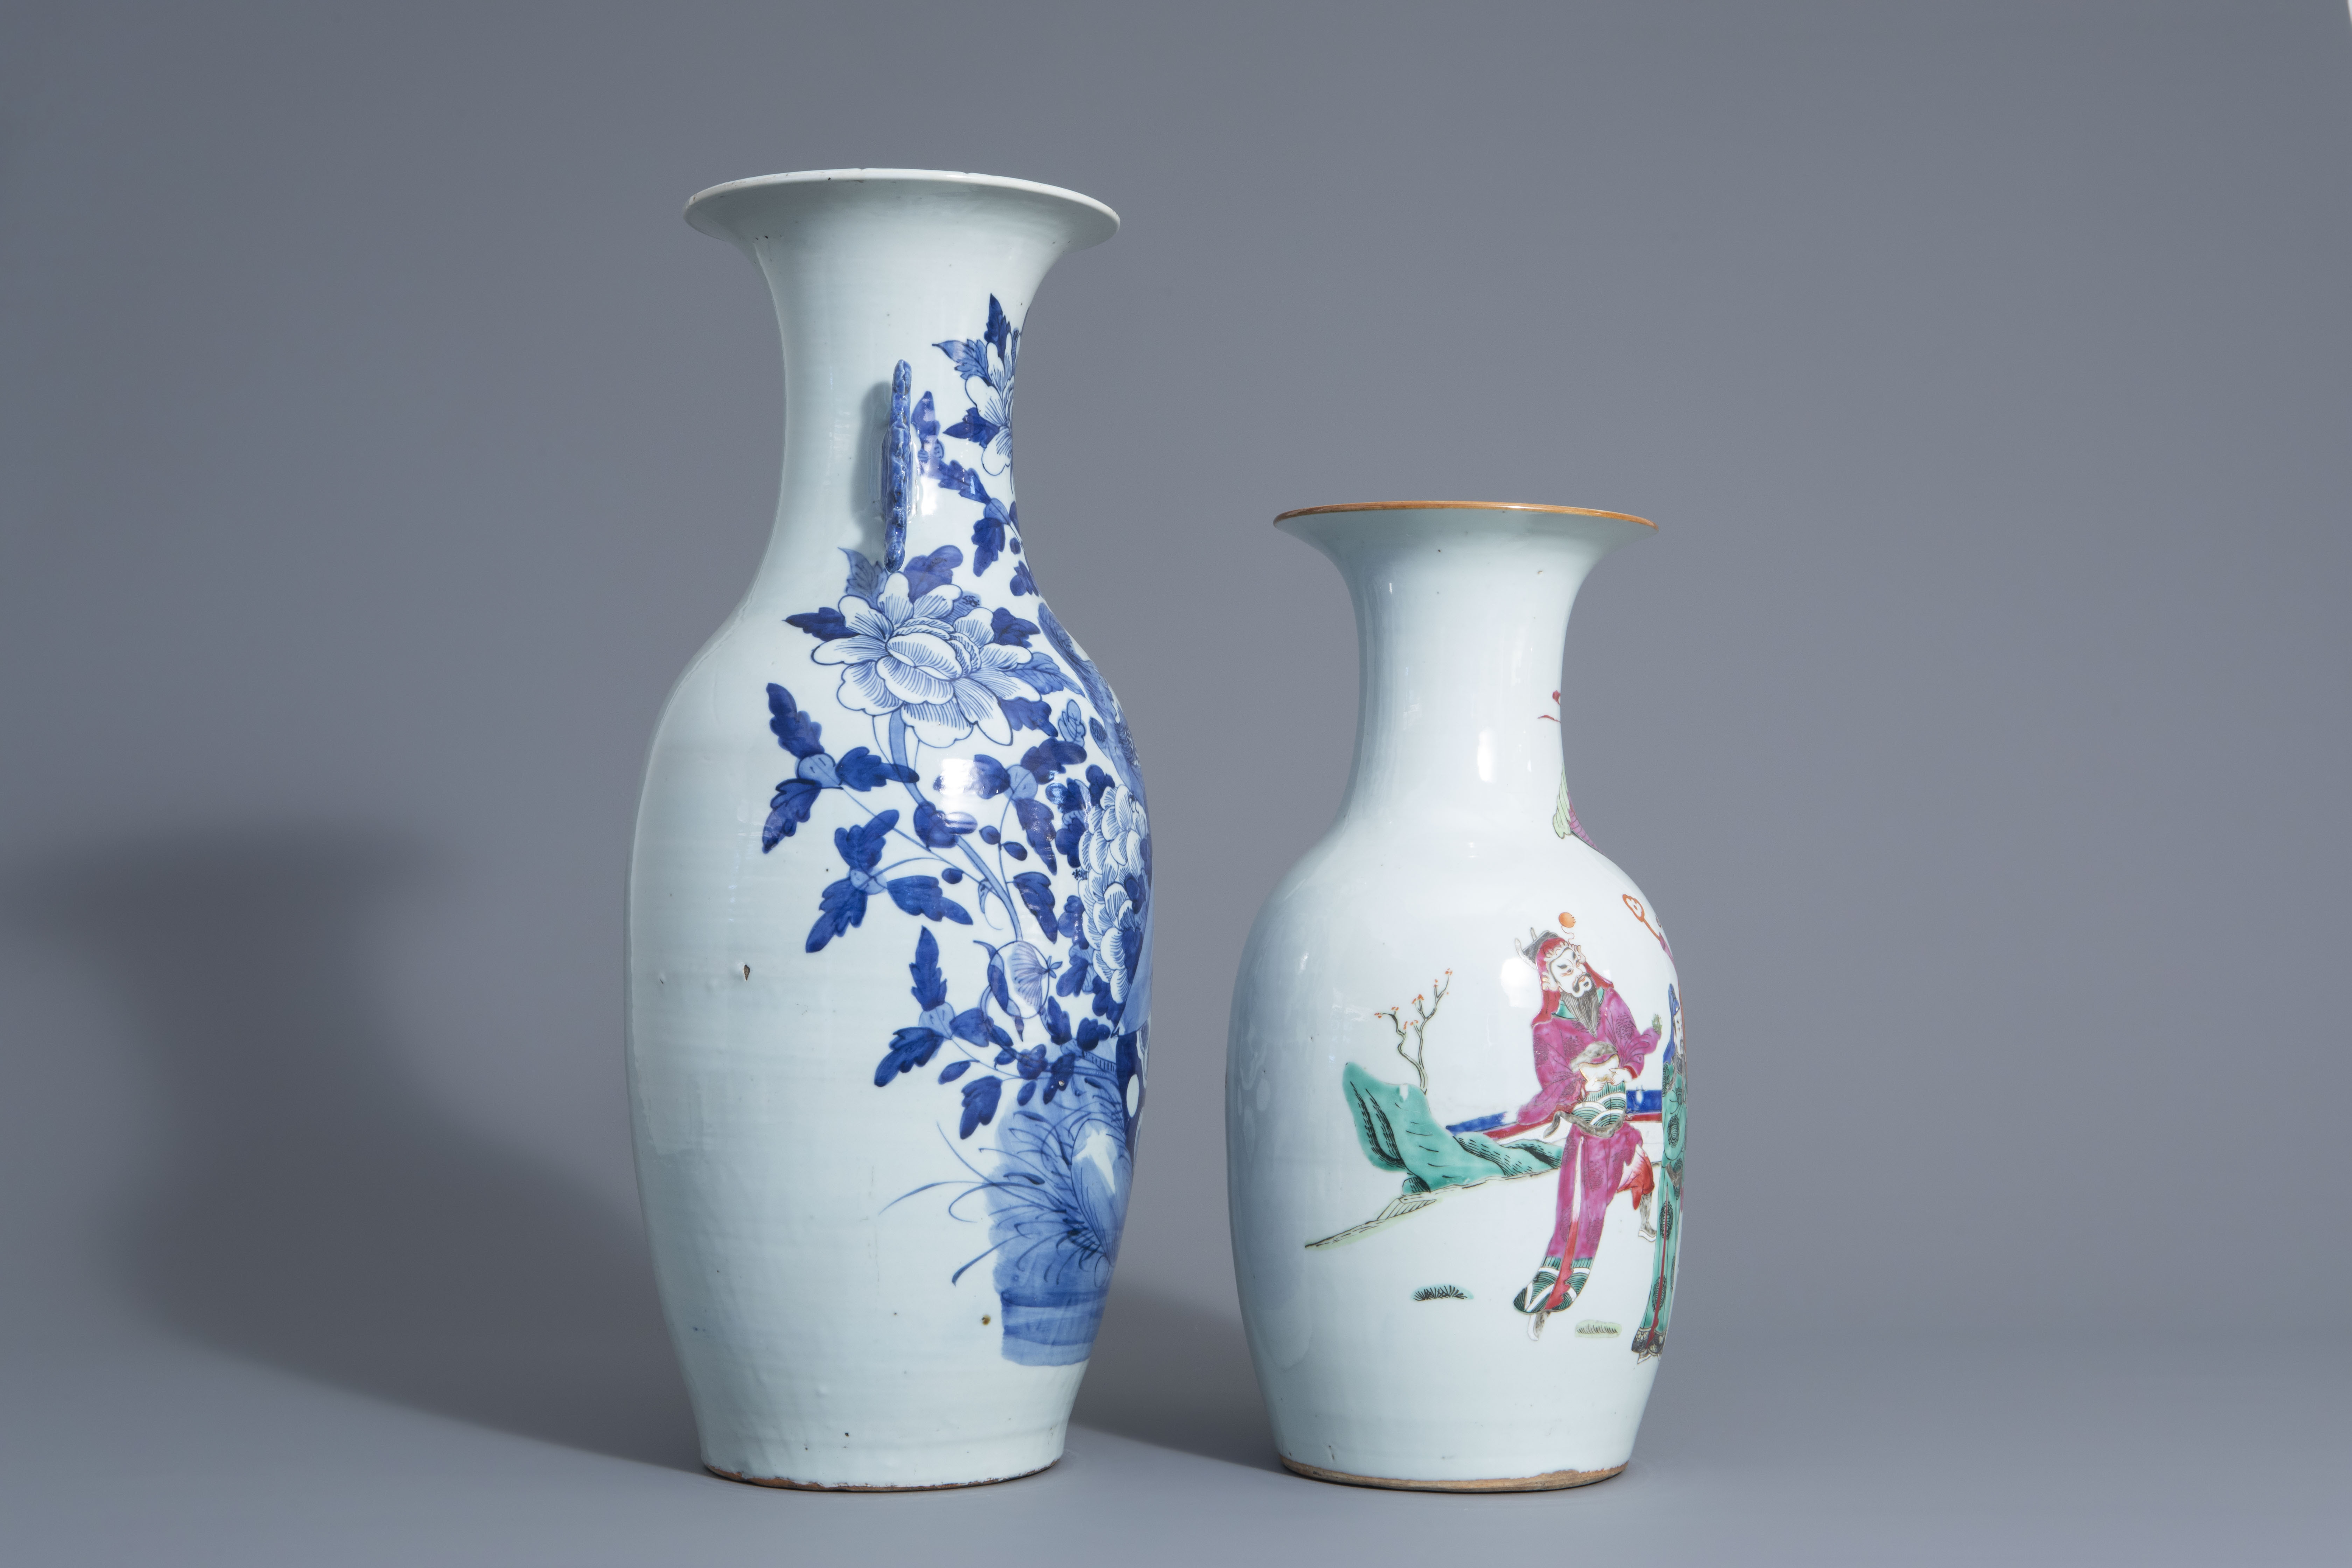 Two Chinese famille rose and blue and white vases with different designs, 19th/20th C. - Image 2 of 6